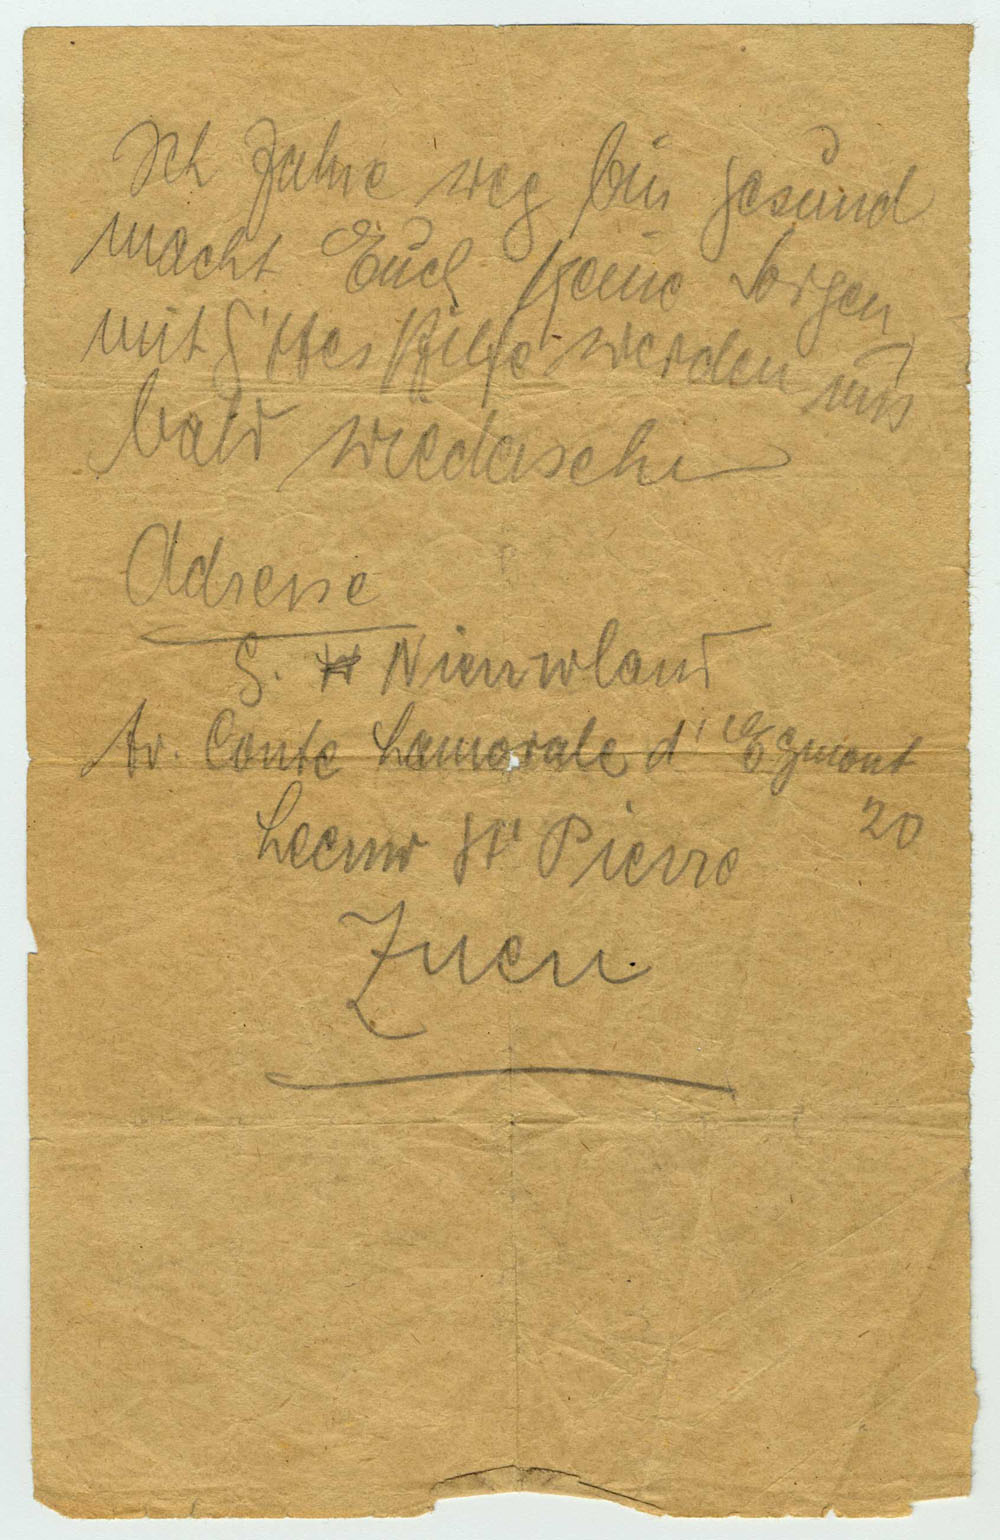 "This note was written from a deportation train by Bajla Kaminski. In the message, she wrote: ""I'm leaving, am healthy. Don't worry with the help of God we will soon see each other again."""